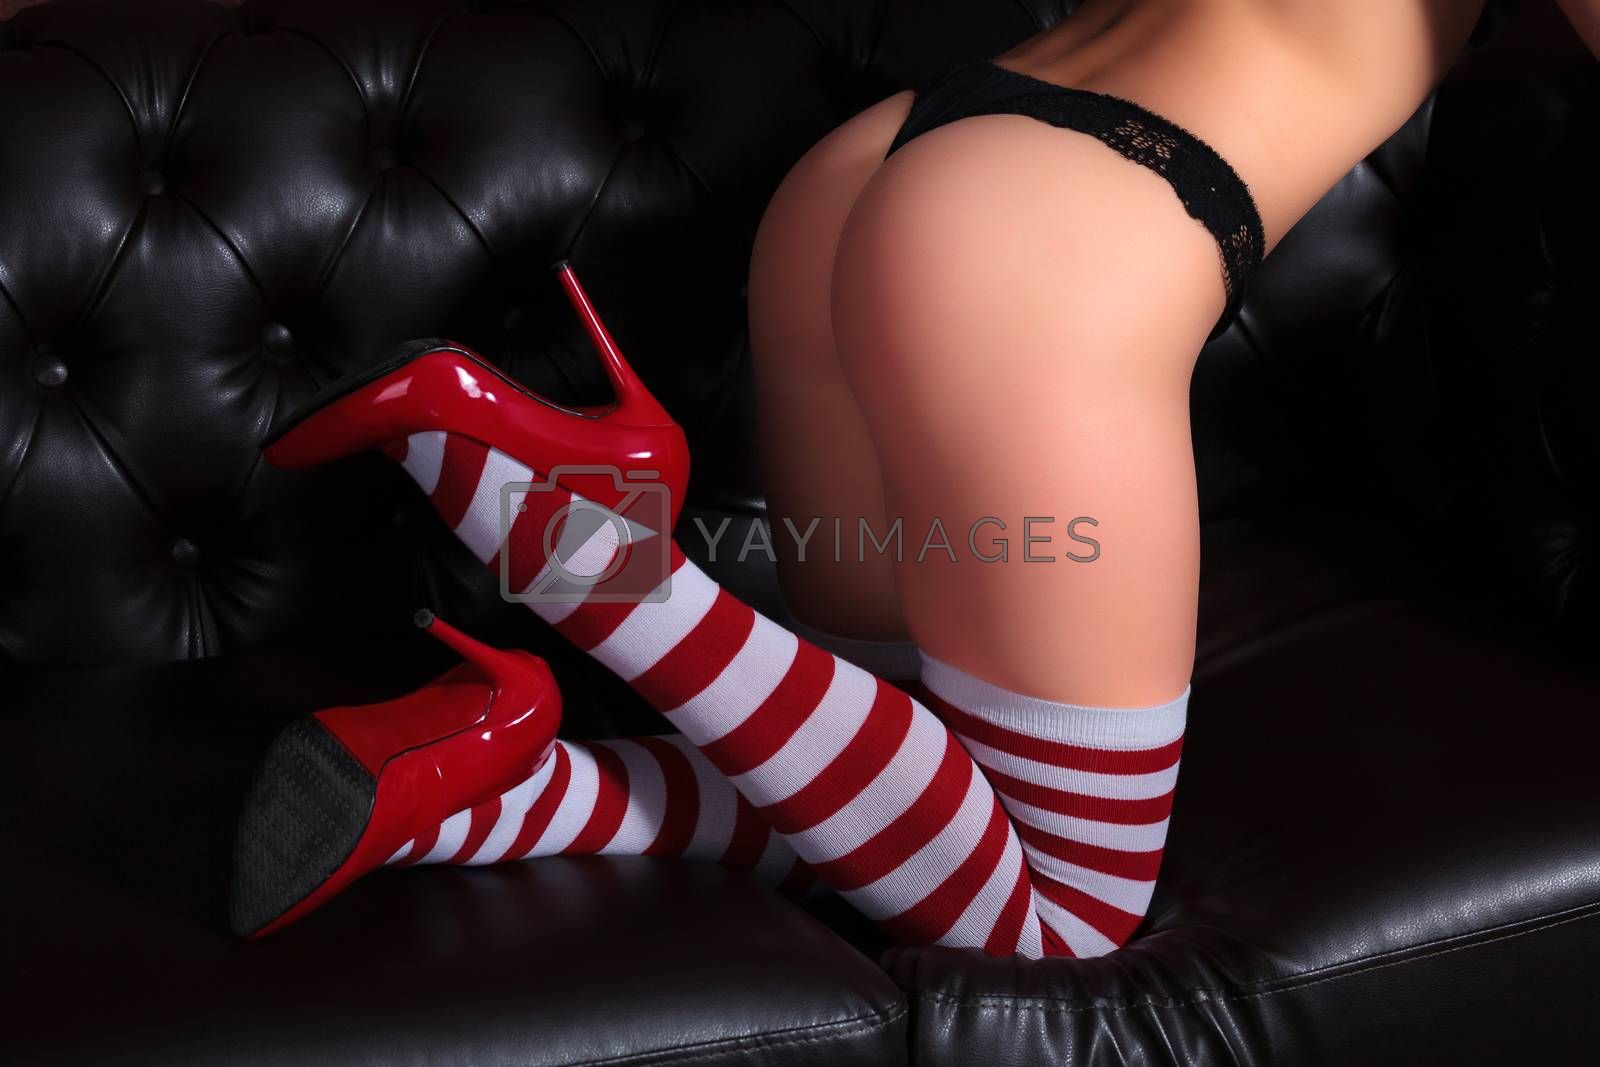 Closeup shot of beautiful female body, woman in striped tights and red shoes. Sexy lady posing on a brown leather sofa.